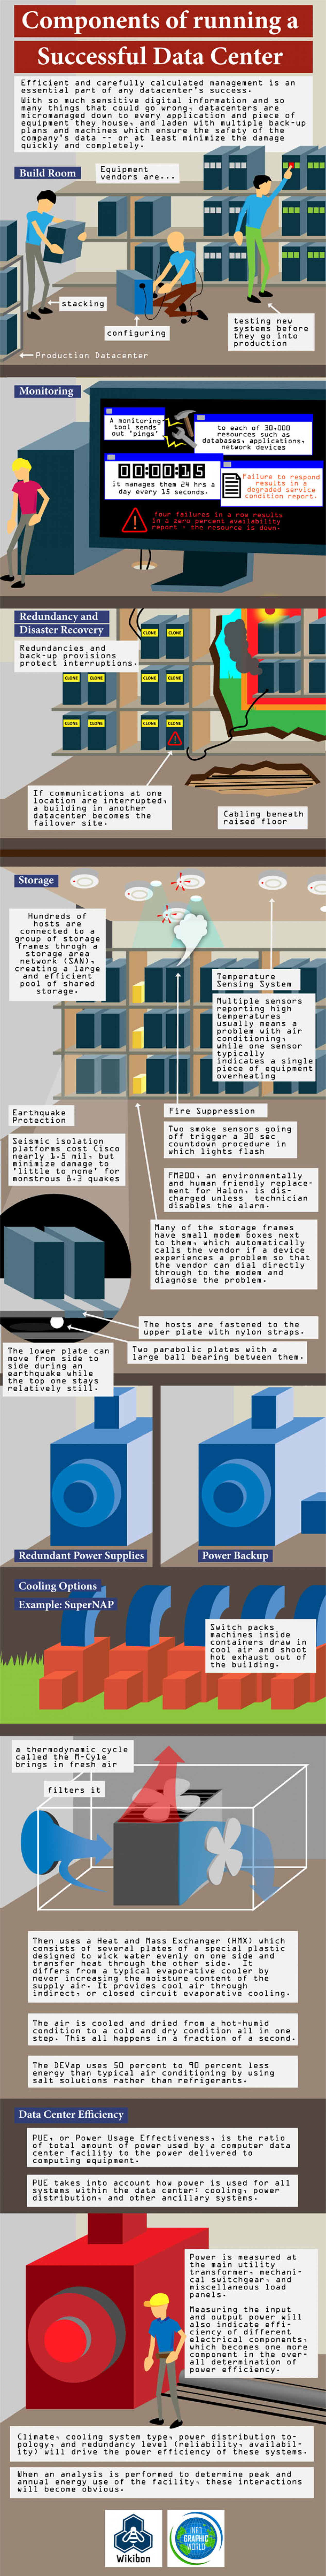 Components Of Running A Successful Data Center Infographic